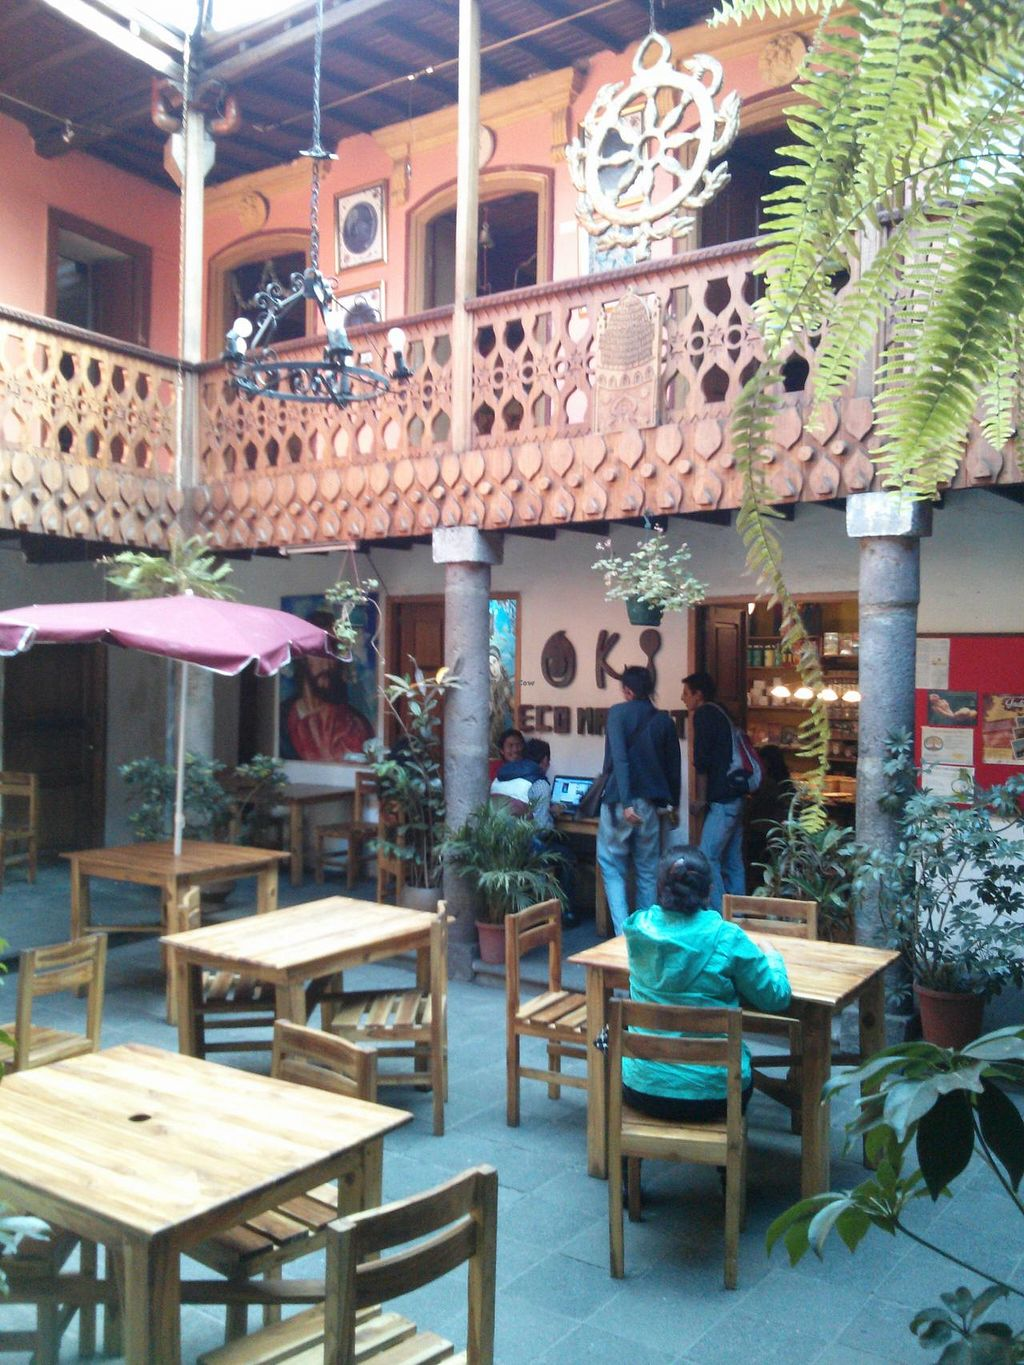 """Photo of Oki Eco Market  by <a href=""""/members/profile/earthville"""">earthville</a> <br/>courtyard <br/> September 8, 2014  - <a href='/contact/abuse/image/34054/79421'>Report</a>"""